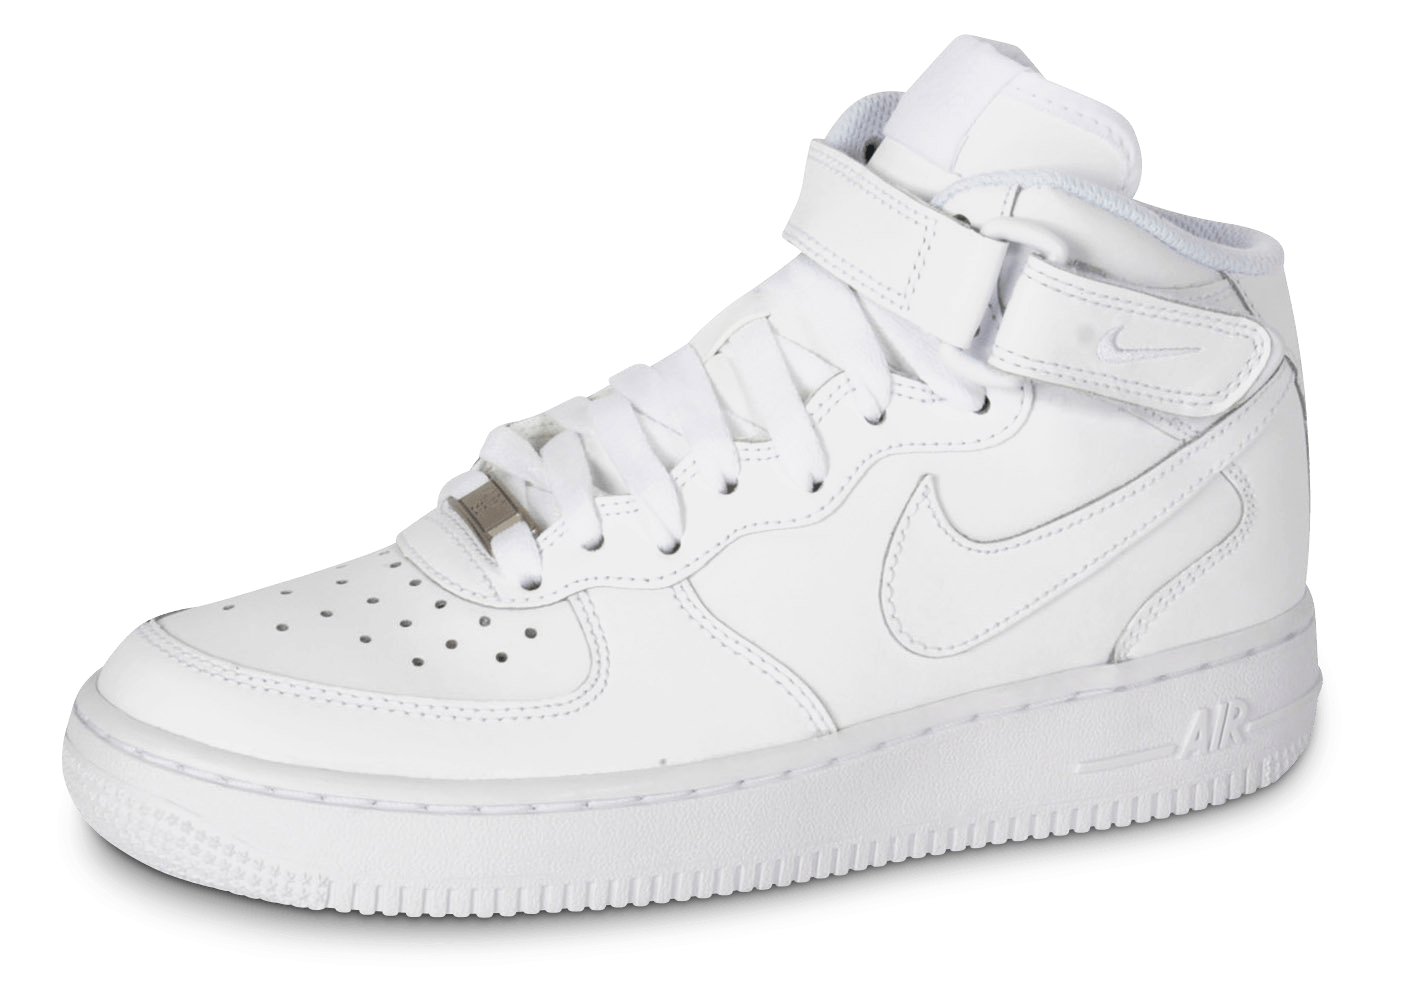 meilleur site web ad20f 0d7eb Nike Air Force 1 J Mid triple blanc